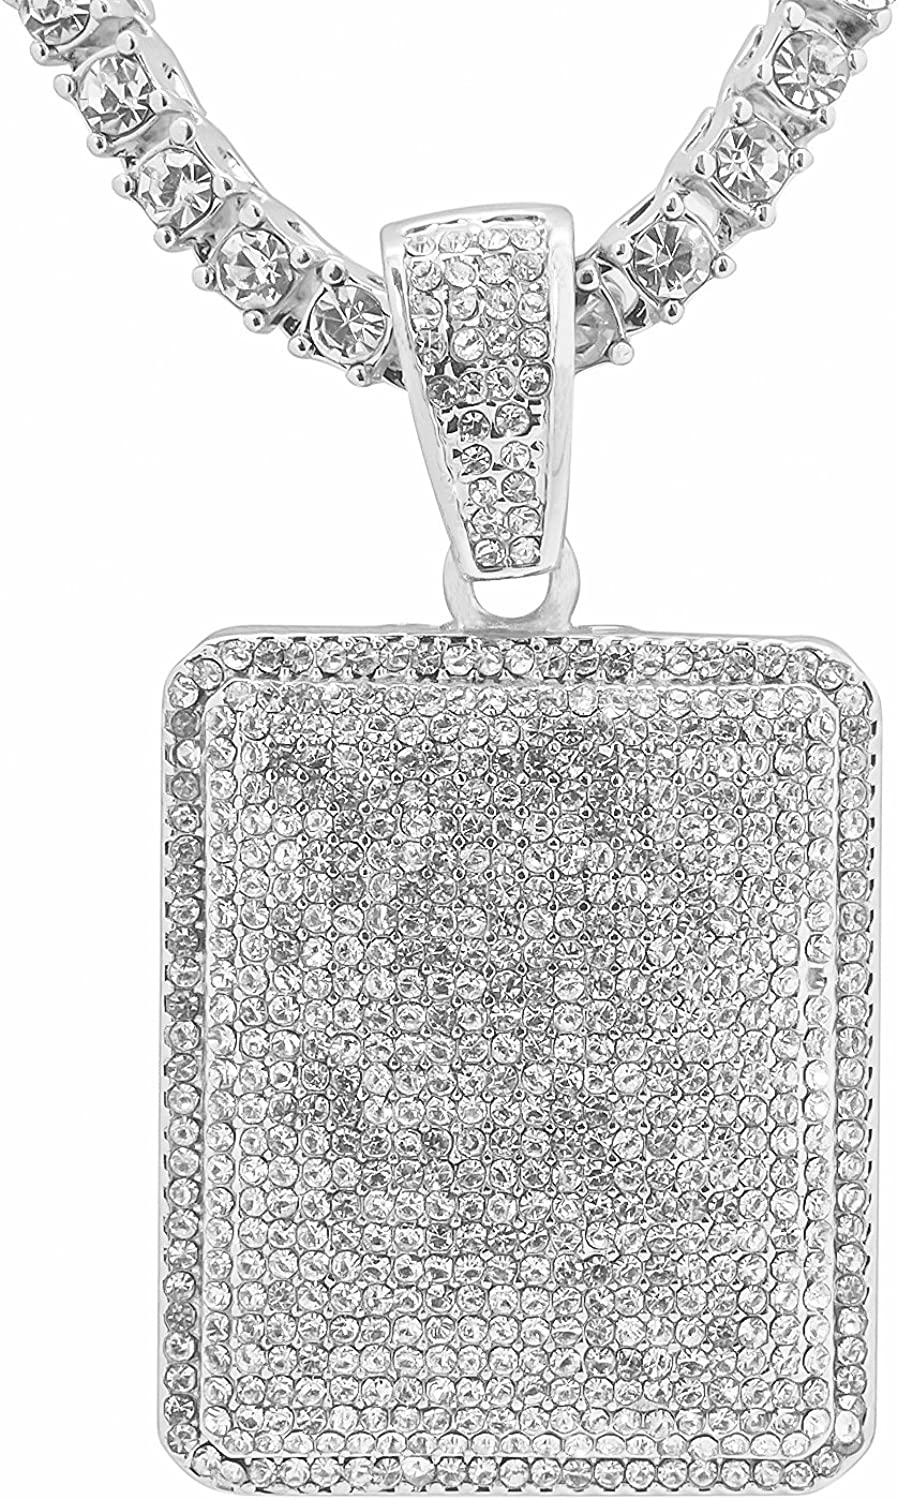 Men/'s Iced Out Hip Hop Gold Silver Square White Stone Pendant Necklace